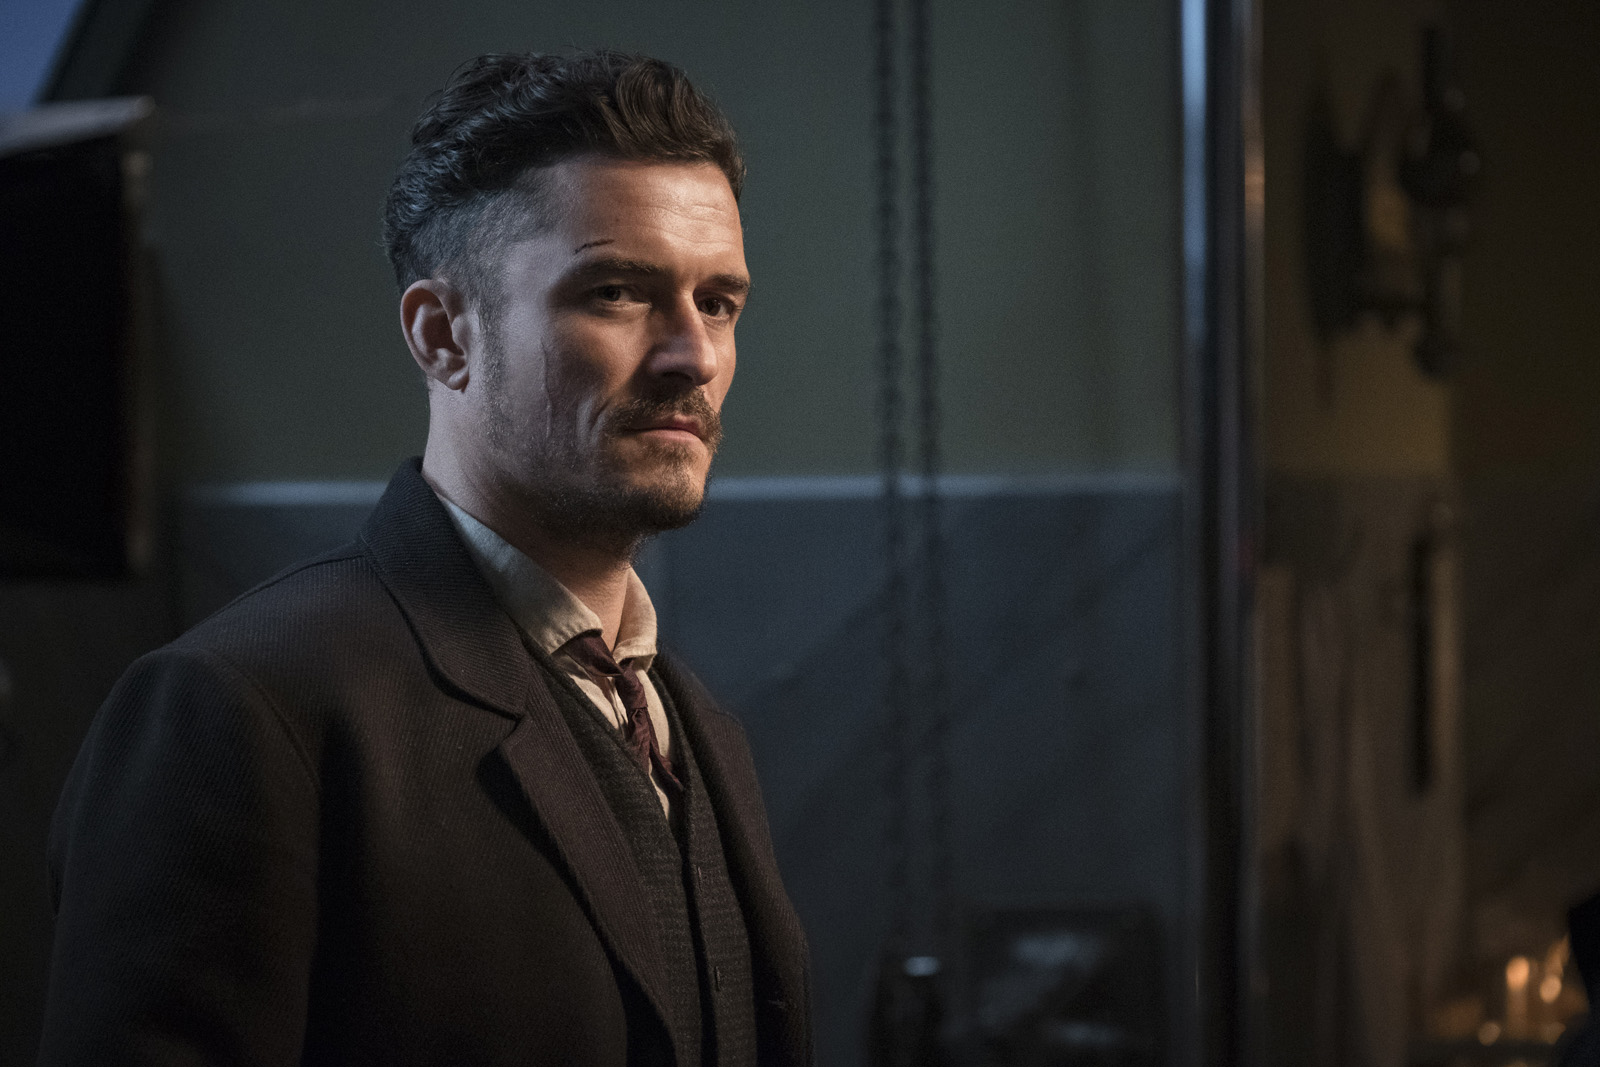 Orlando Bloom announces hell be quarantined upon return